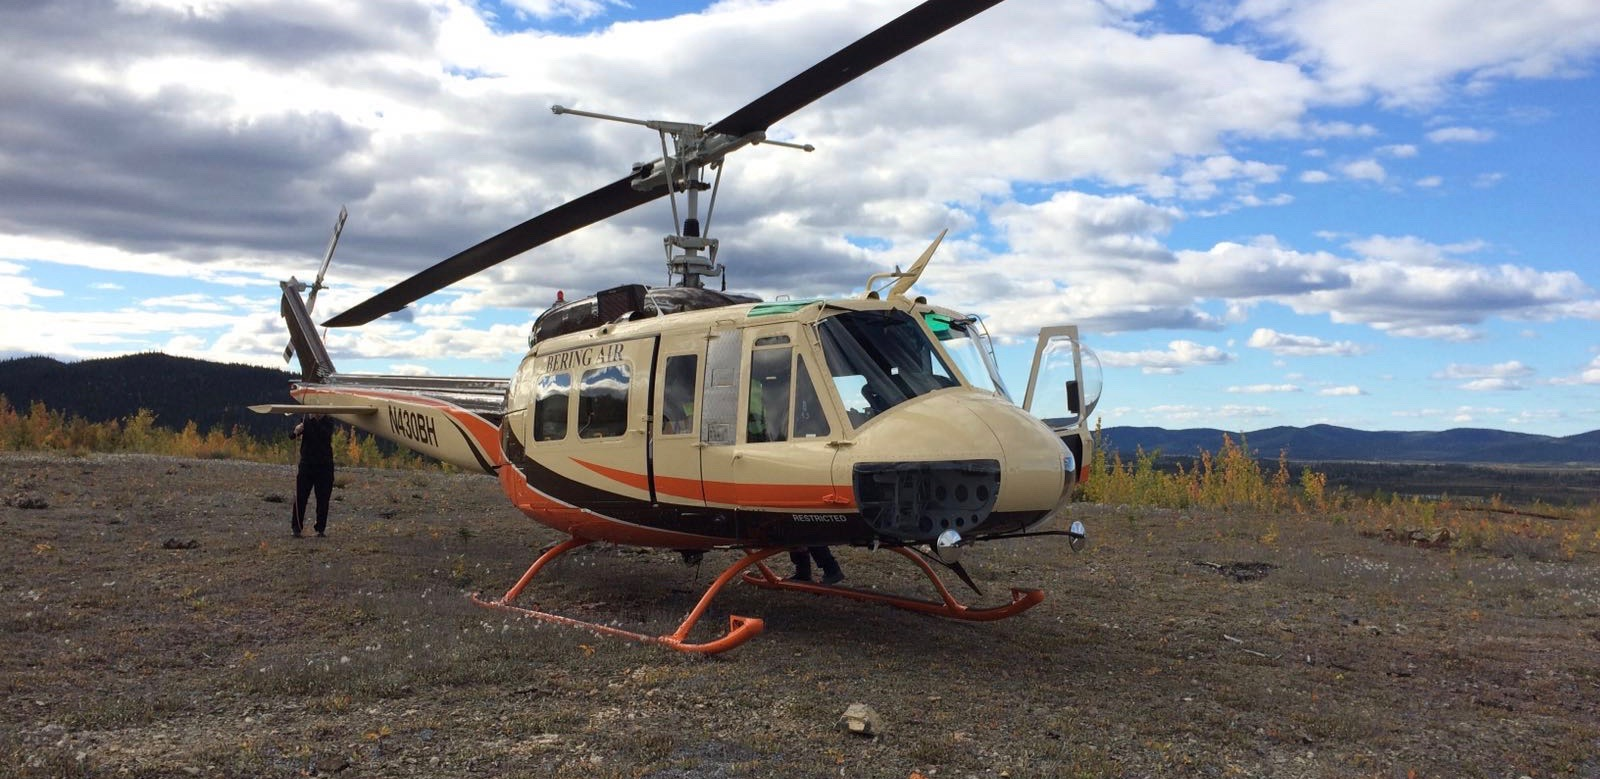 Northwest Helicopters UH-1H Plus | Bering Air, Alaska